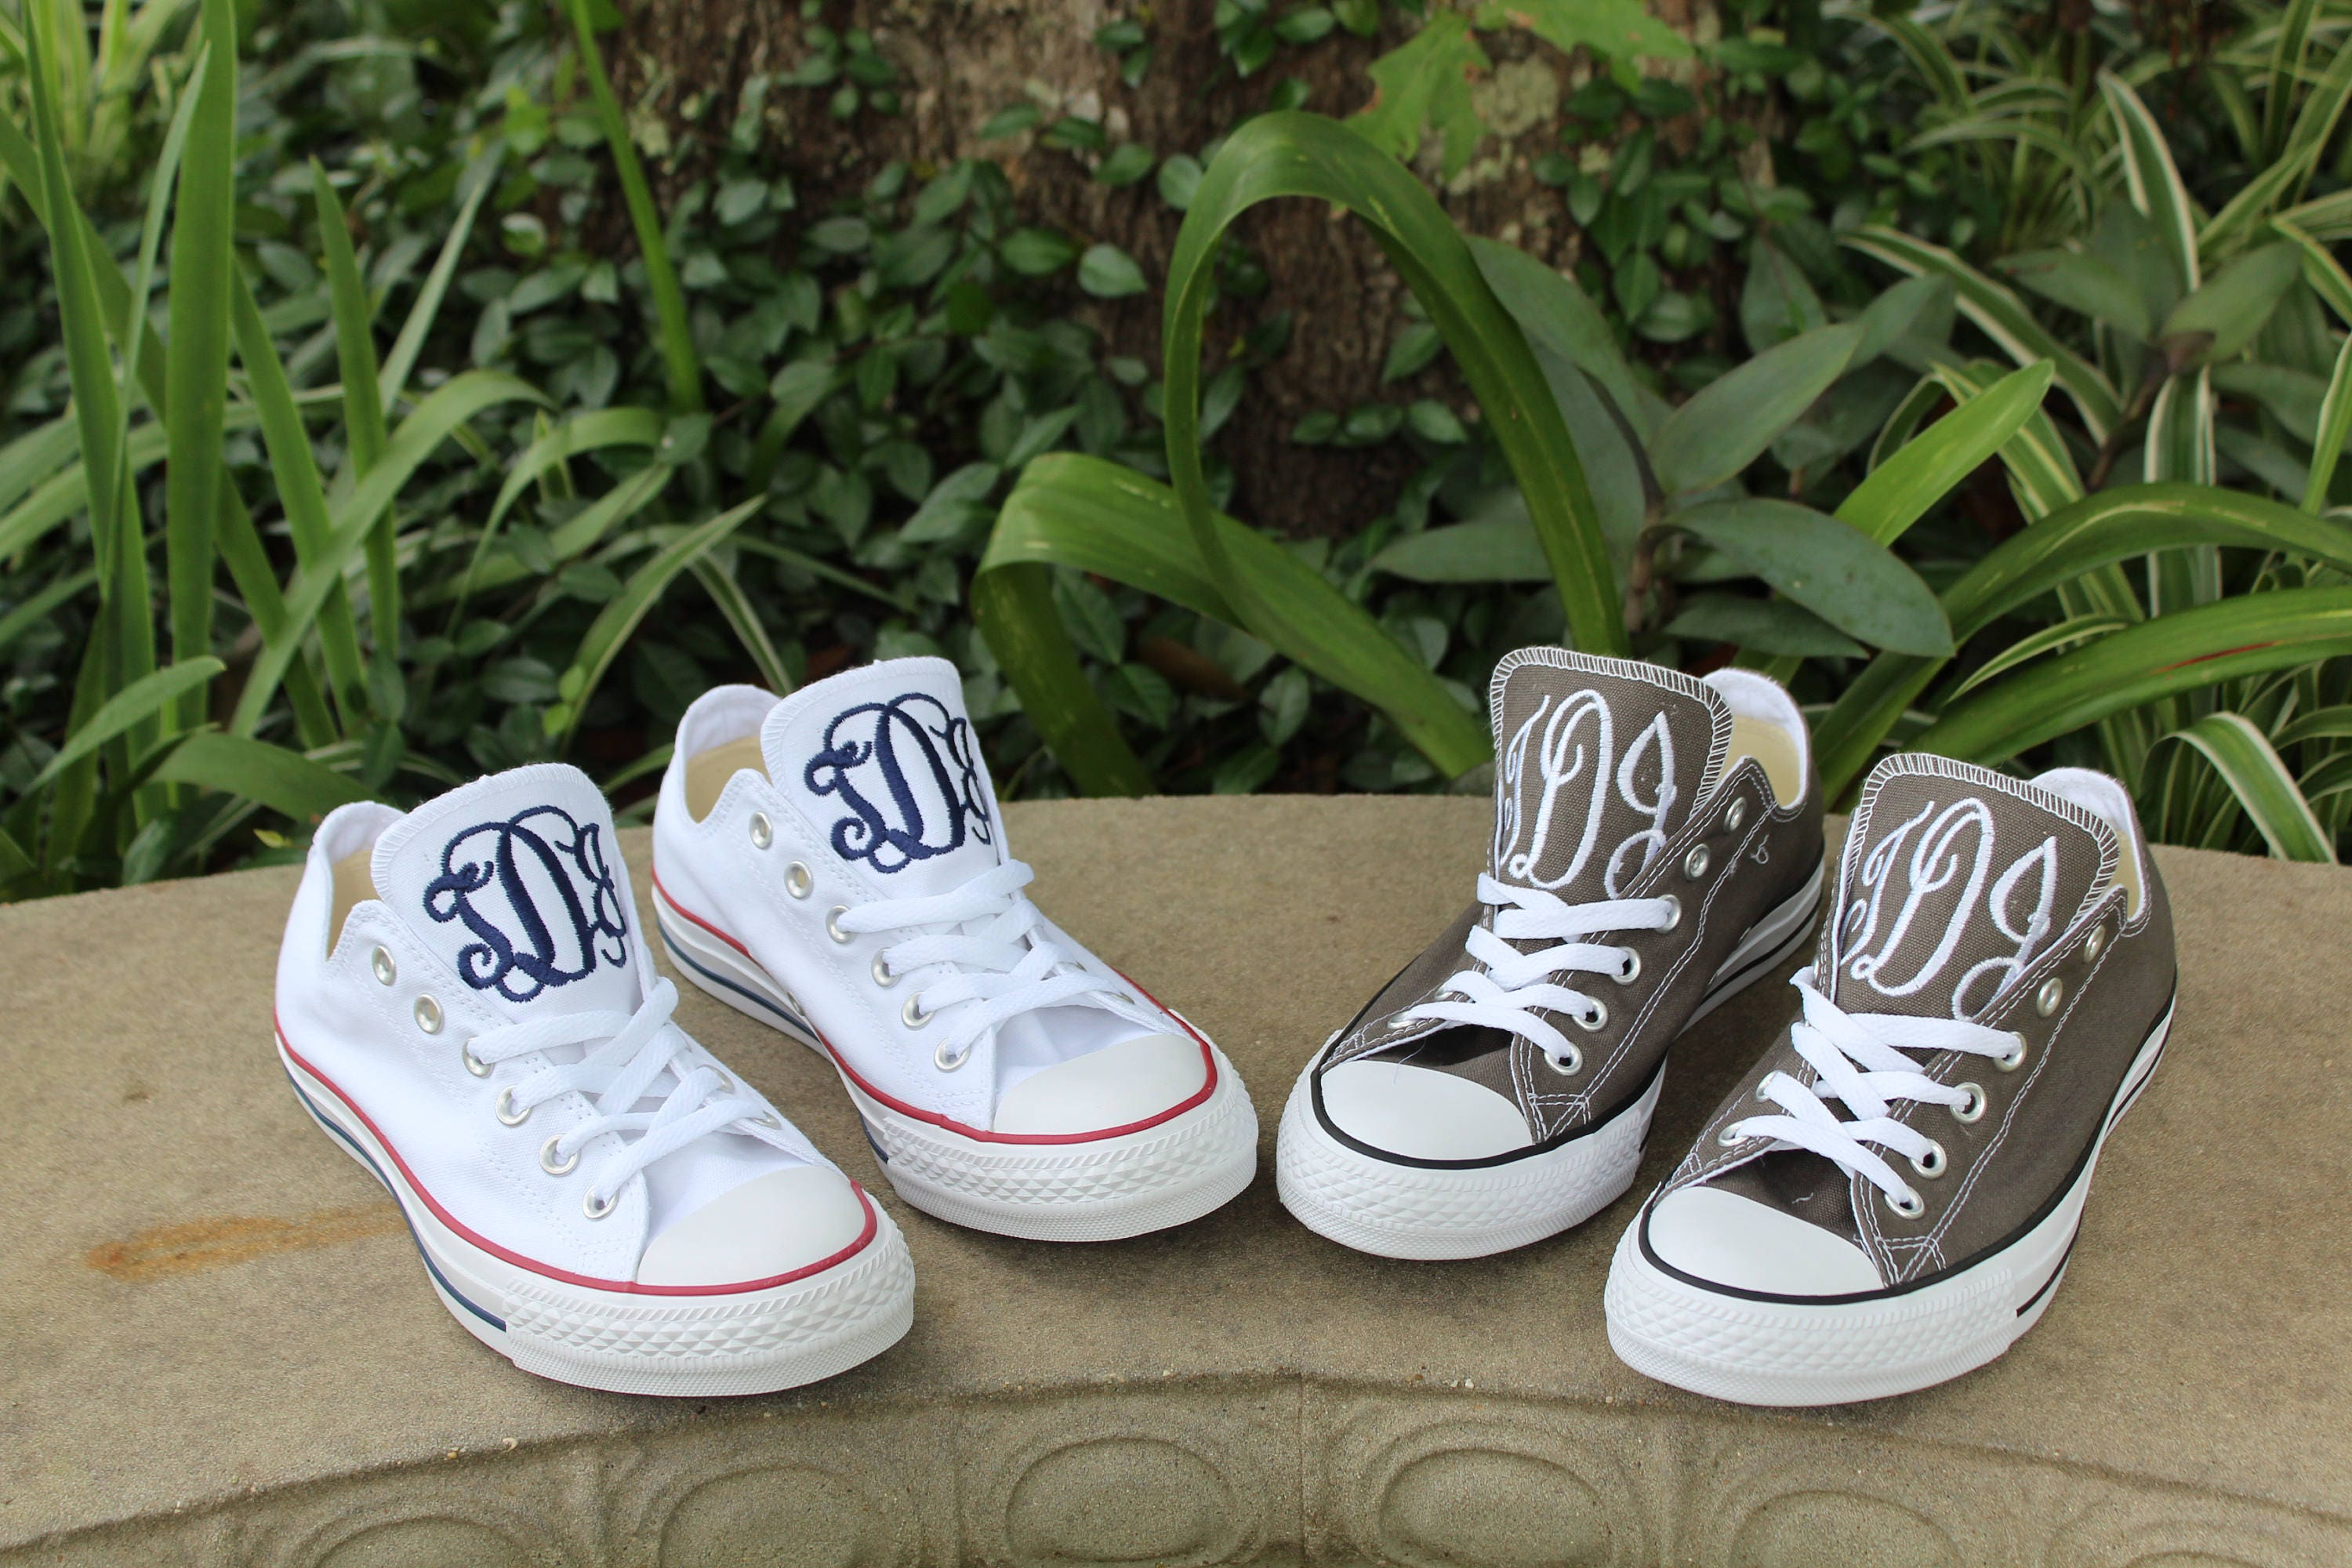 Monogrammed Low Personalized, Top Converse Shoes, initials, Personalized, Low Low Tops, Converse, All Star, Dash Forward d20a4e